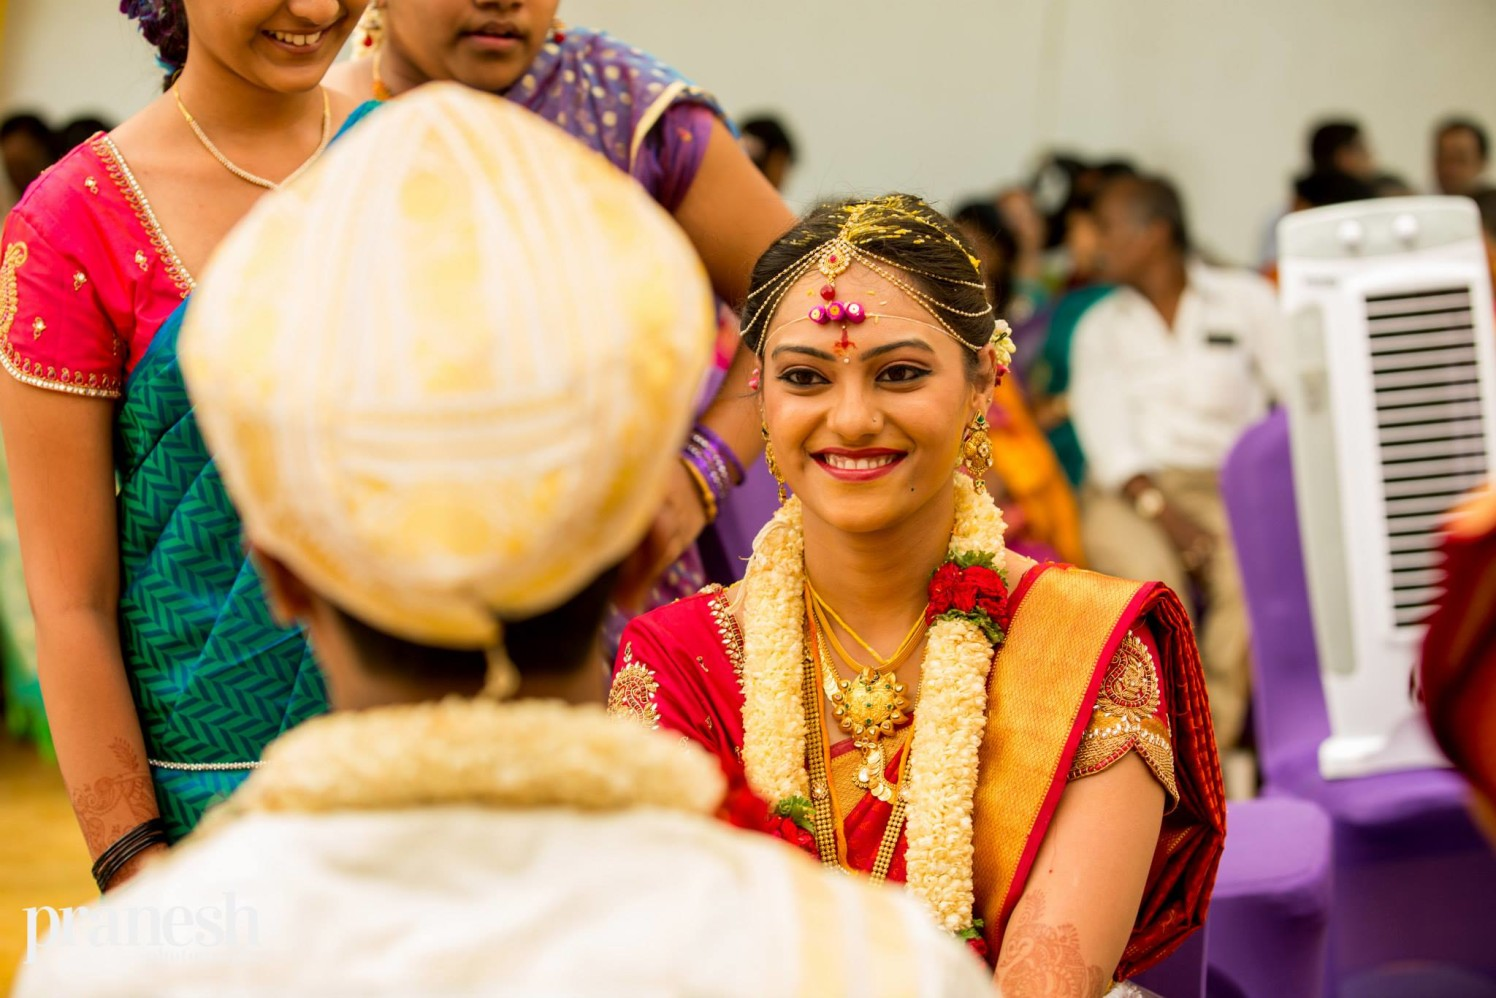 Ravishing peer by Studio 31 by Pranesh Photography Wedding-photography | Weddings Photos & Ideas